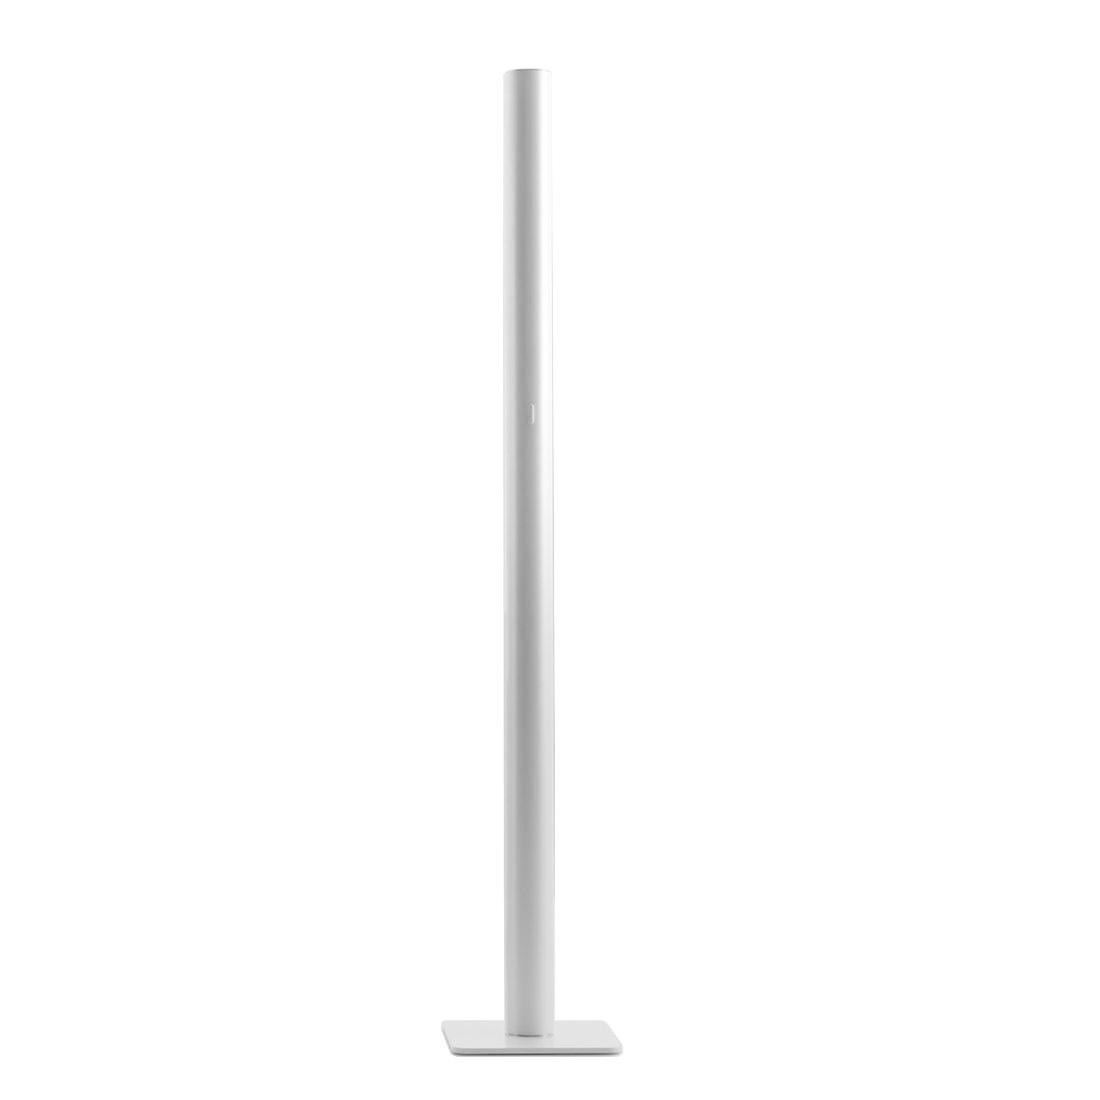 Artemide Ilio Terra Led Floor Lamp App Control 2700k Ambientedirect